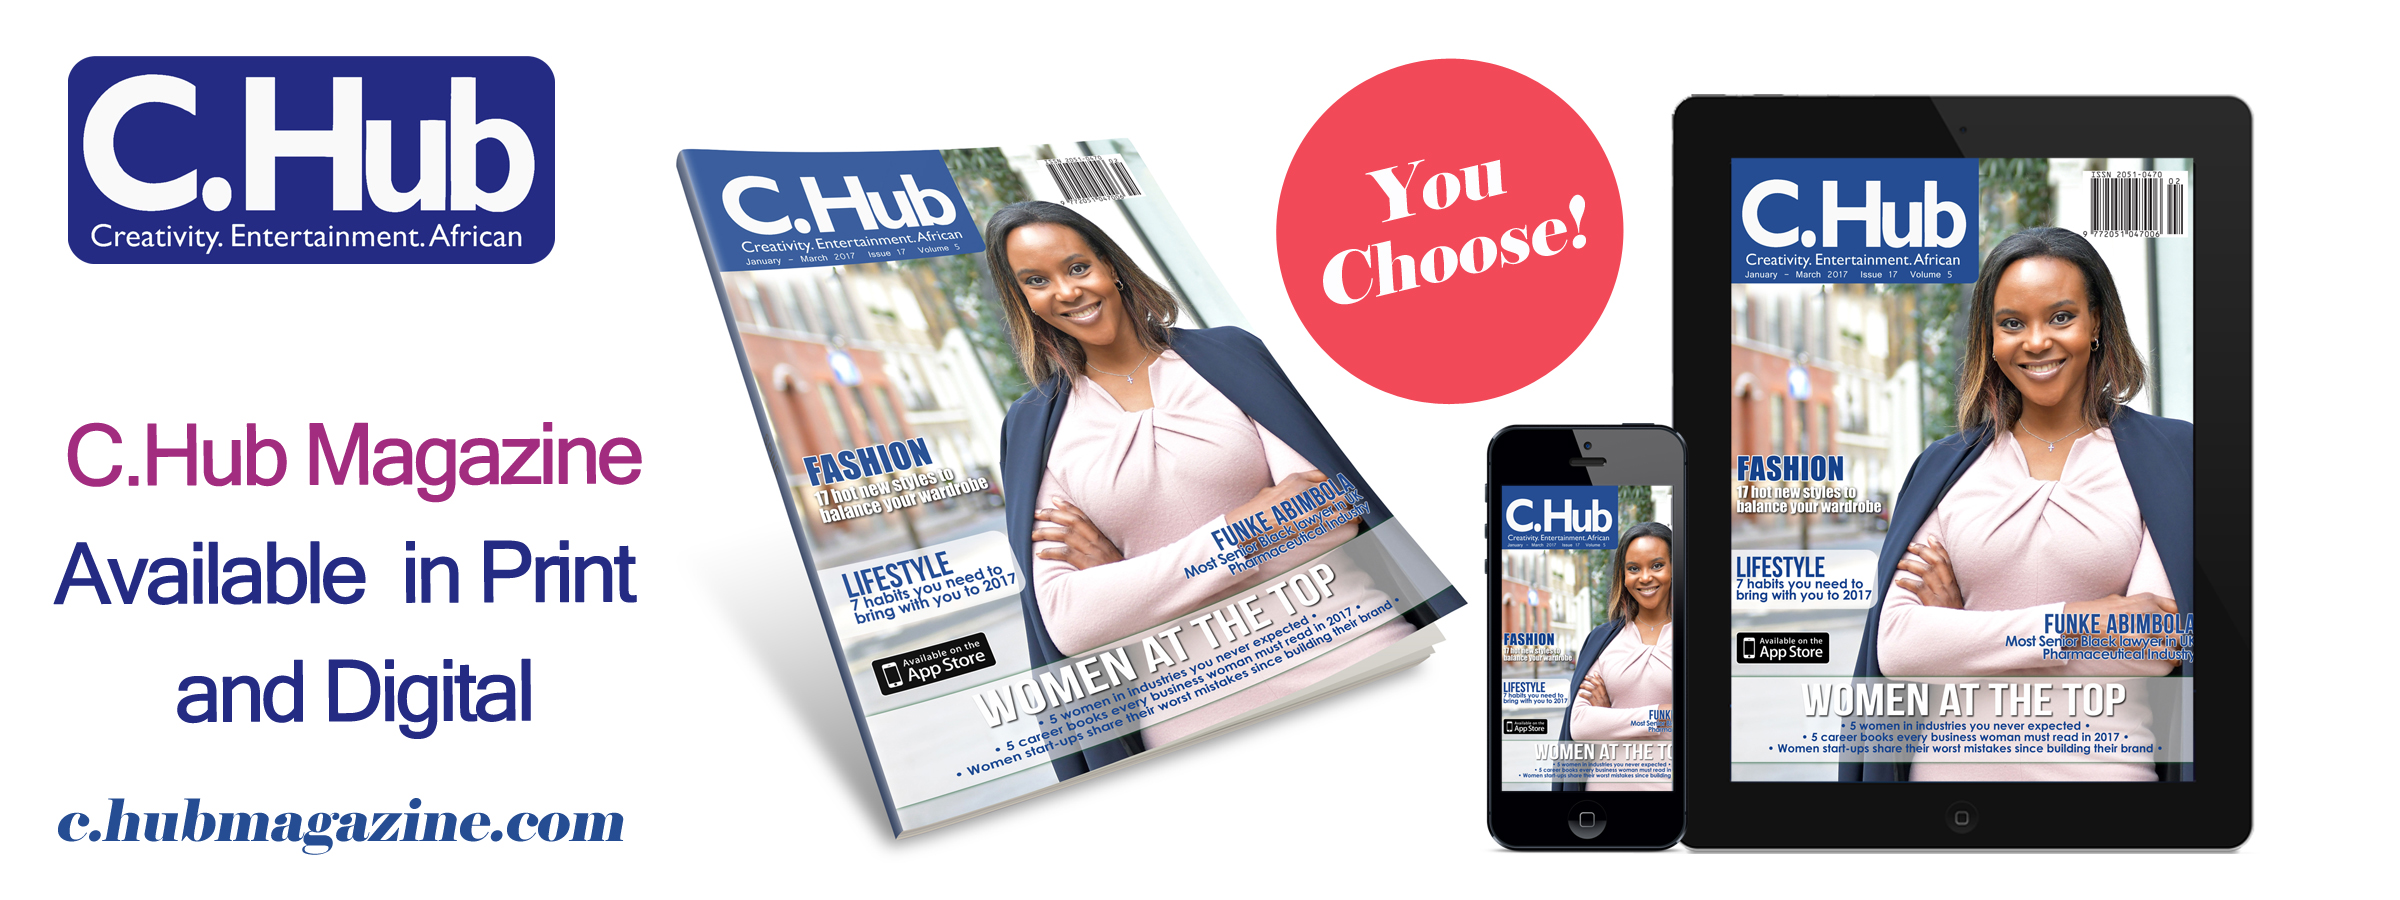 C. Hub Magazine on the App Store.